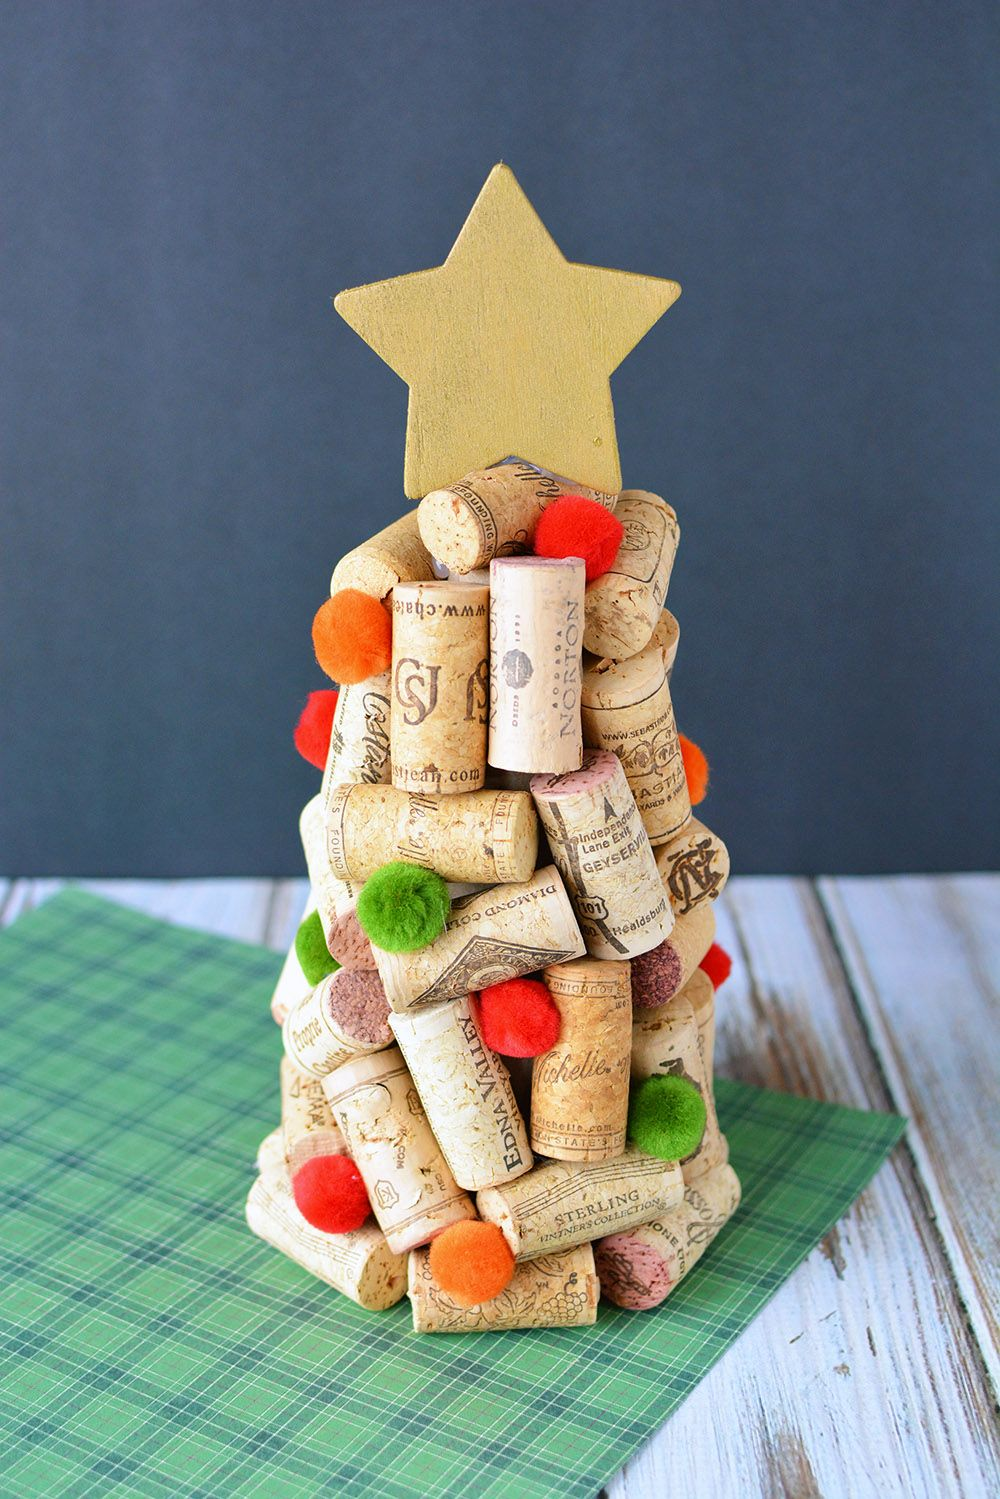 50 Easy Christmas Crafts for Adults to Make - DIY Ideas for Holiday Craft Projects